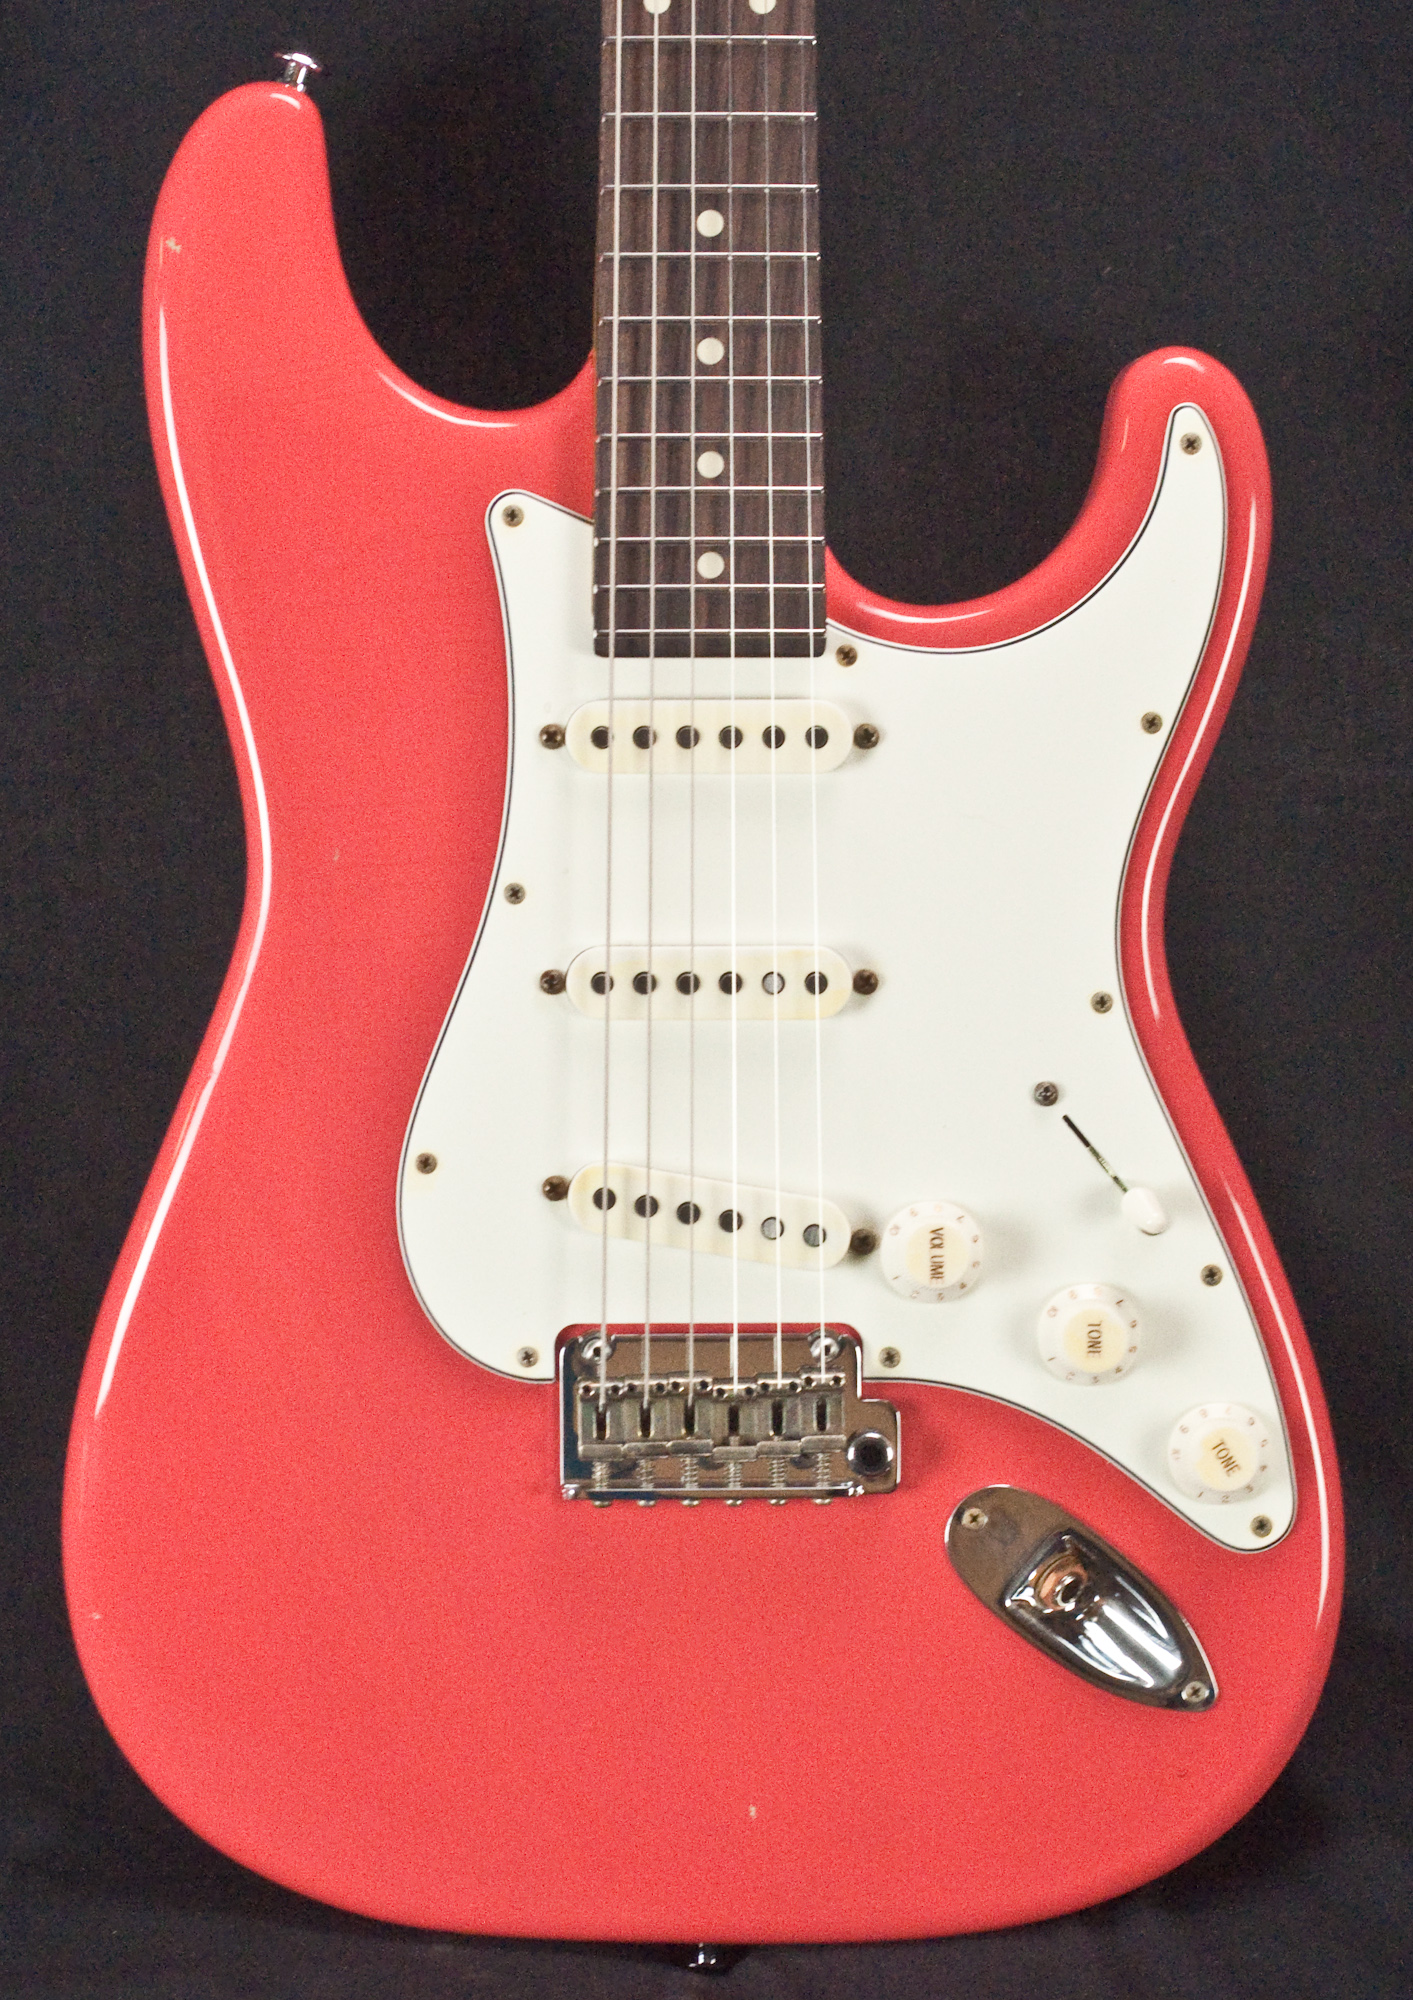 Suhr Classic Antique Fiesta Red Sss Electric Guitar Jst8k3c